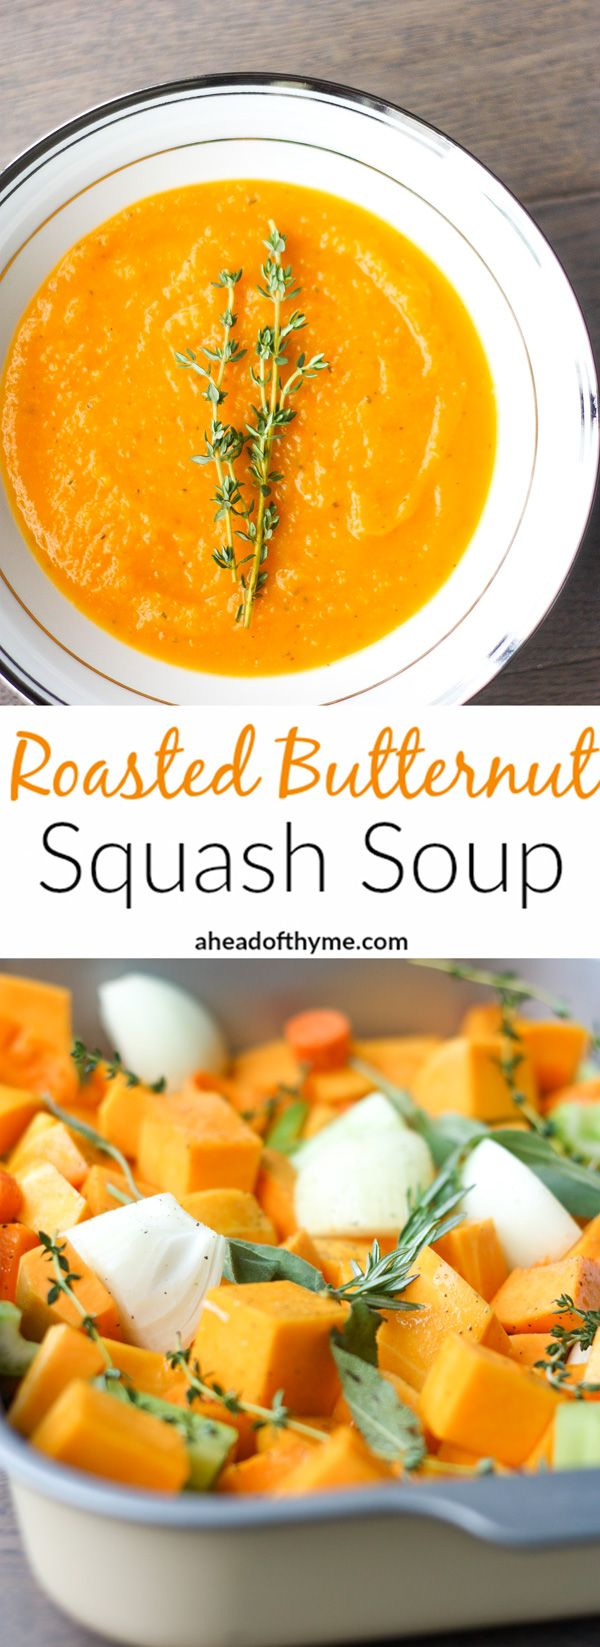 Roasted Butternut Squash Soup: This delicious roasted butternut squash soup sums u